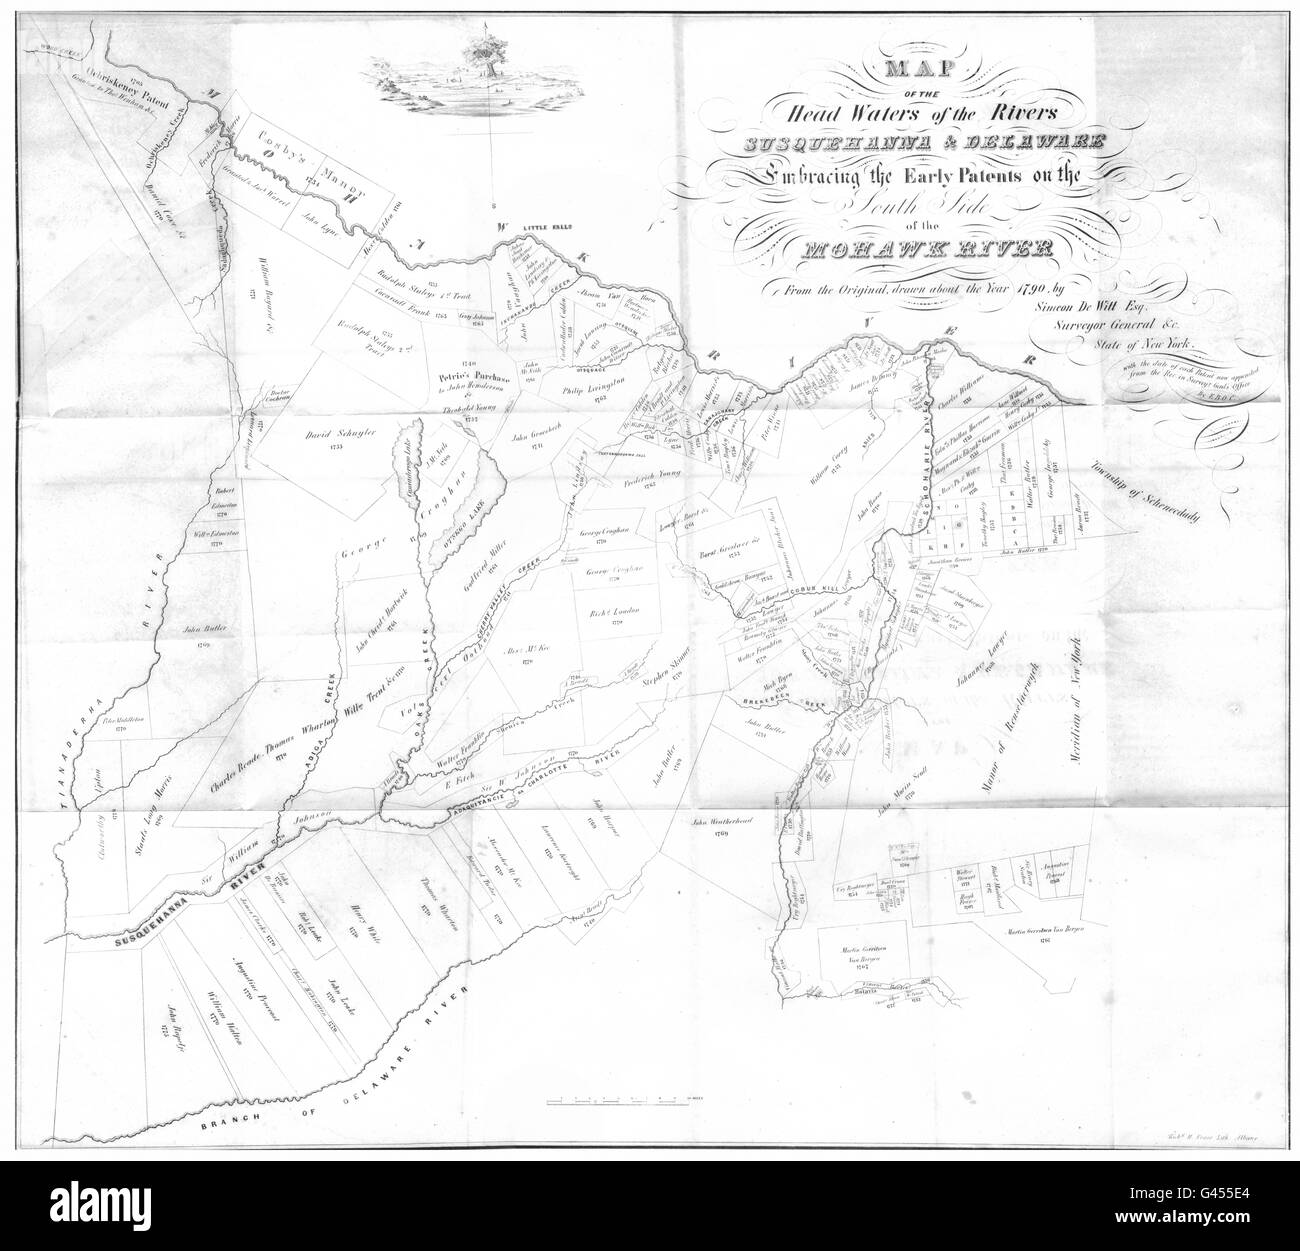 Map Of New York Rivers.New York State Mohawk Susquehanna Delaware Rivers Little Falls